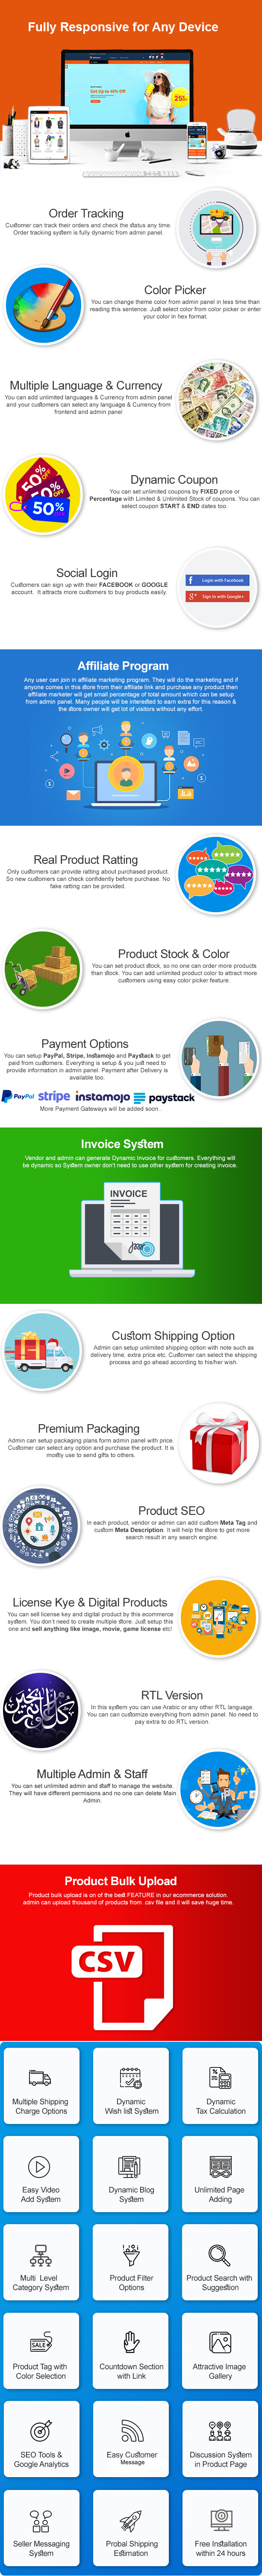 eCommerce - Responsive Ecommerce Business Management System - 2